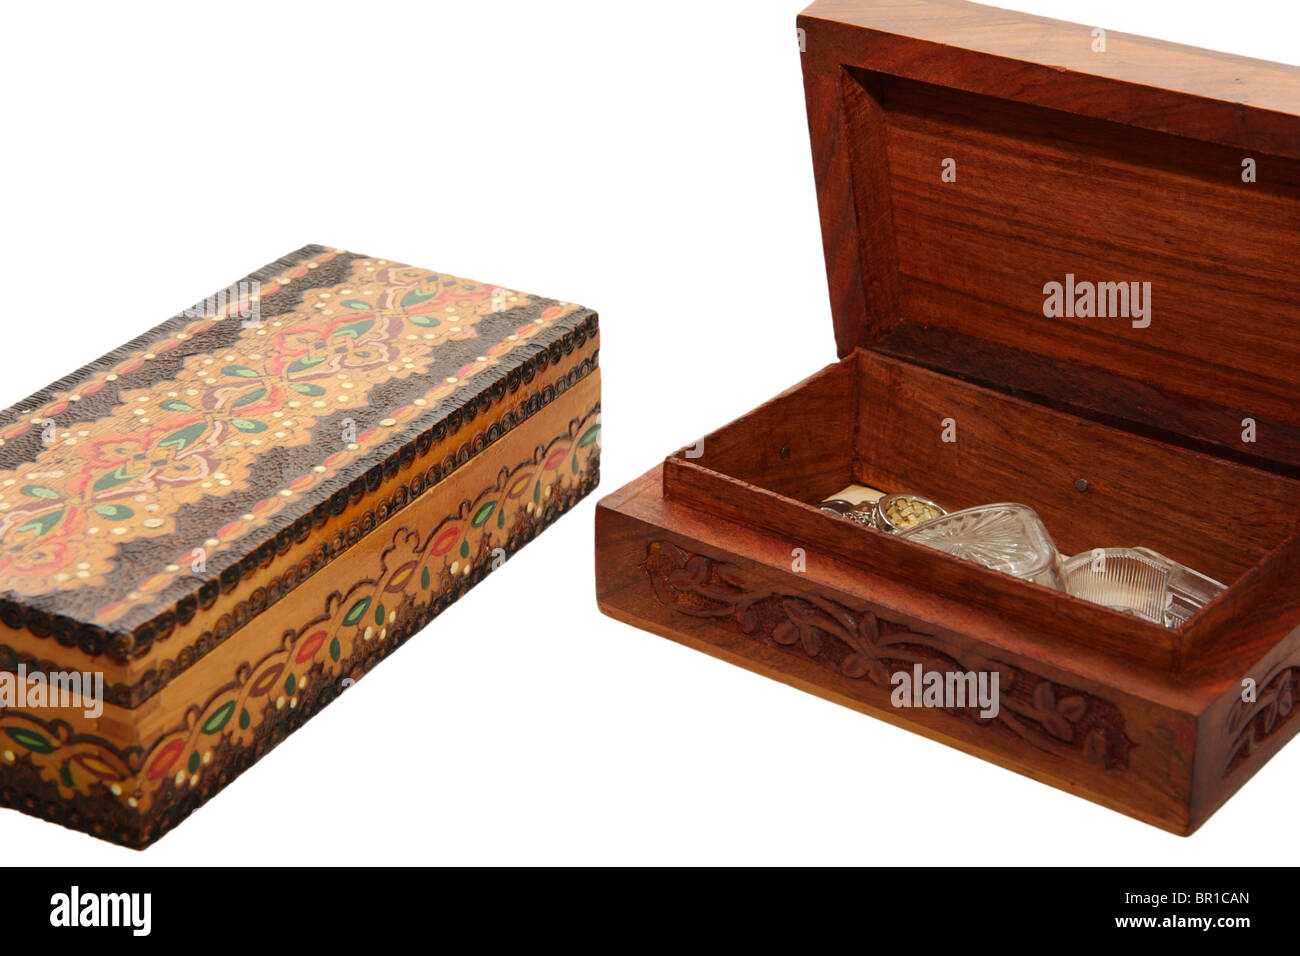 Wooden jewel-boxes isolated on white - Stock Image